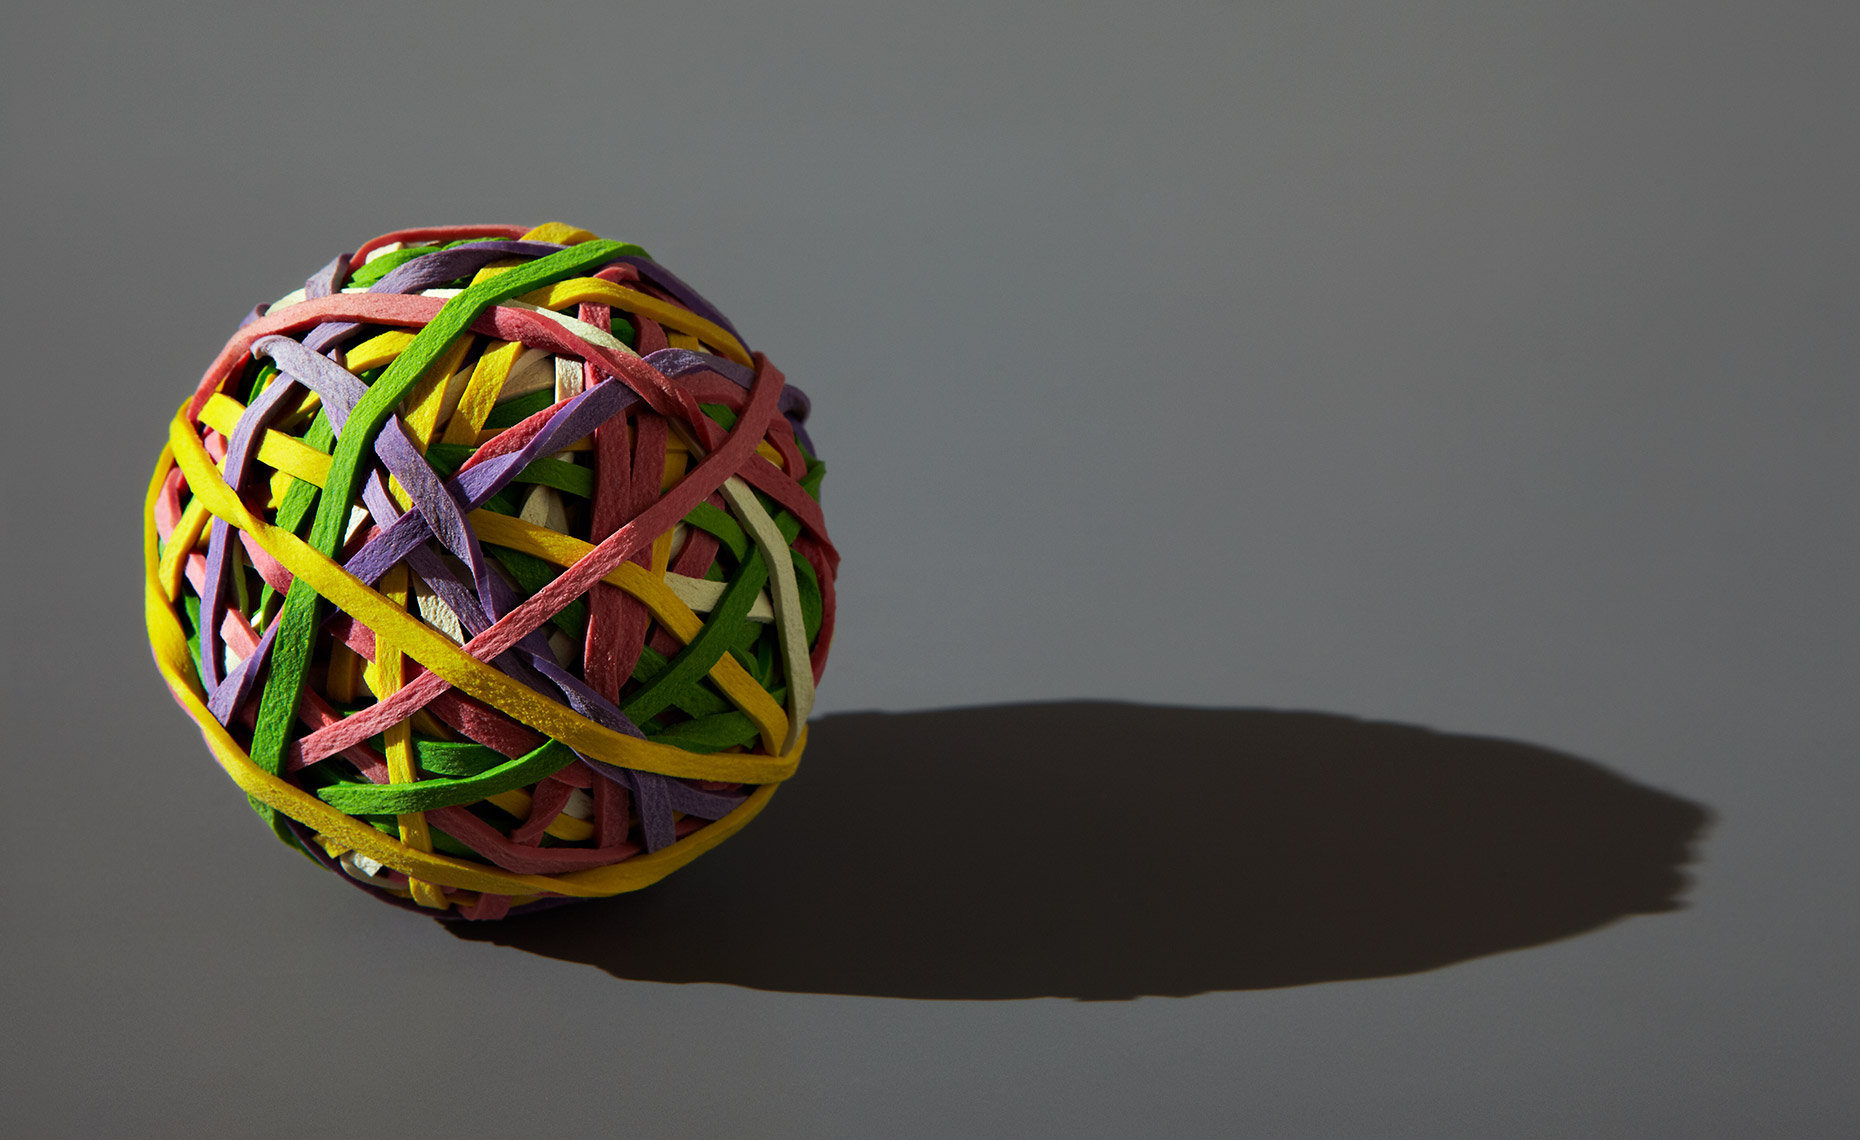 Rubberband Ball, Greg Shapps, Shapps Photography, LLC.